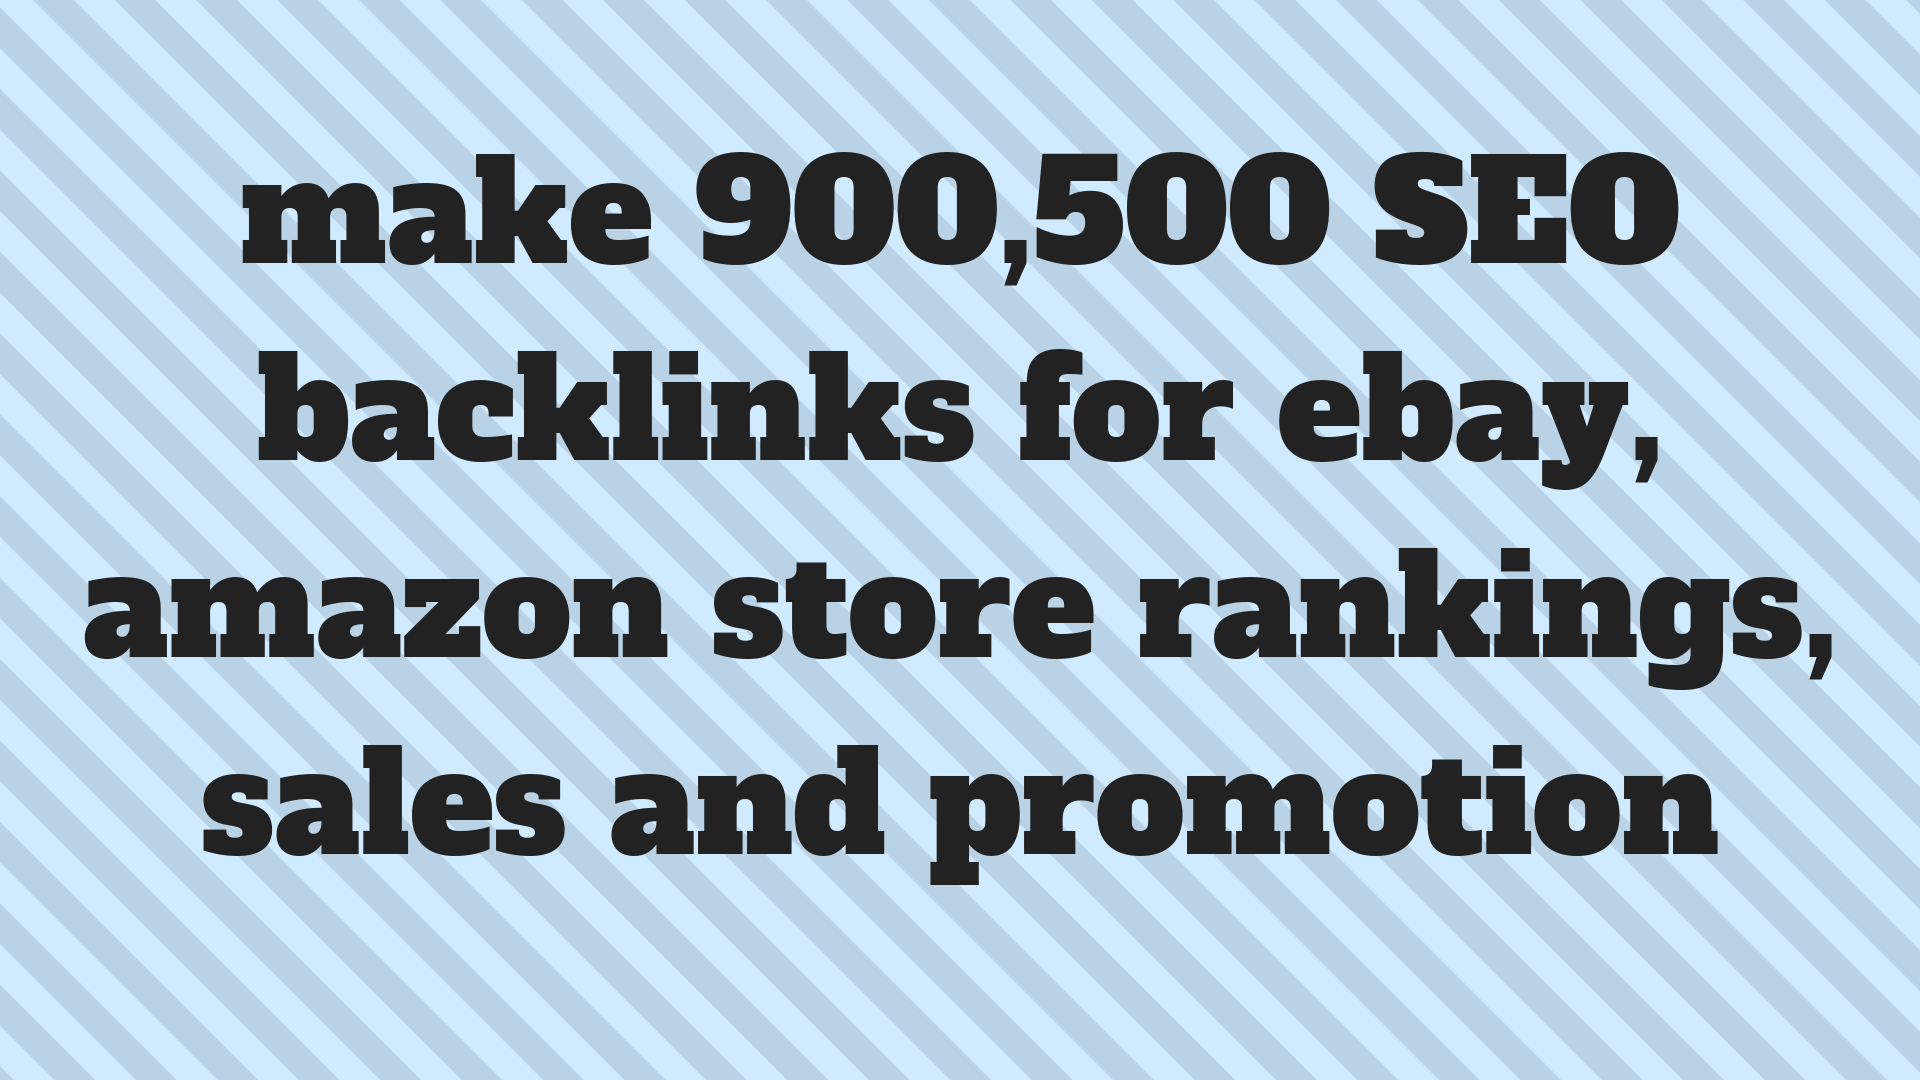 make 900,500 SEO backlinks for ebay,  amazon store rankings,  sales and promotion